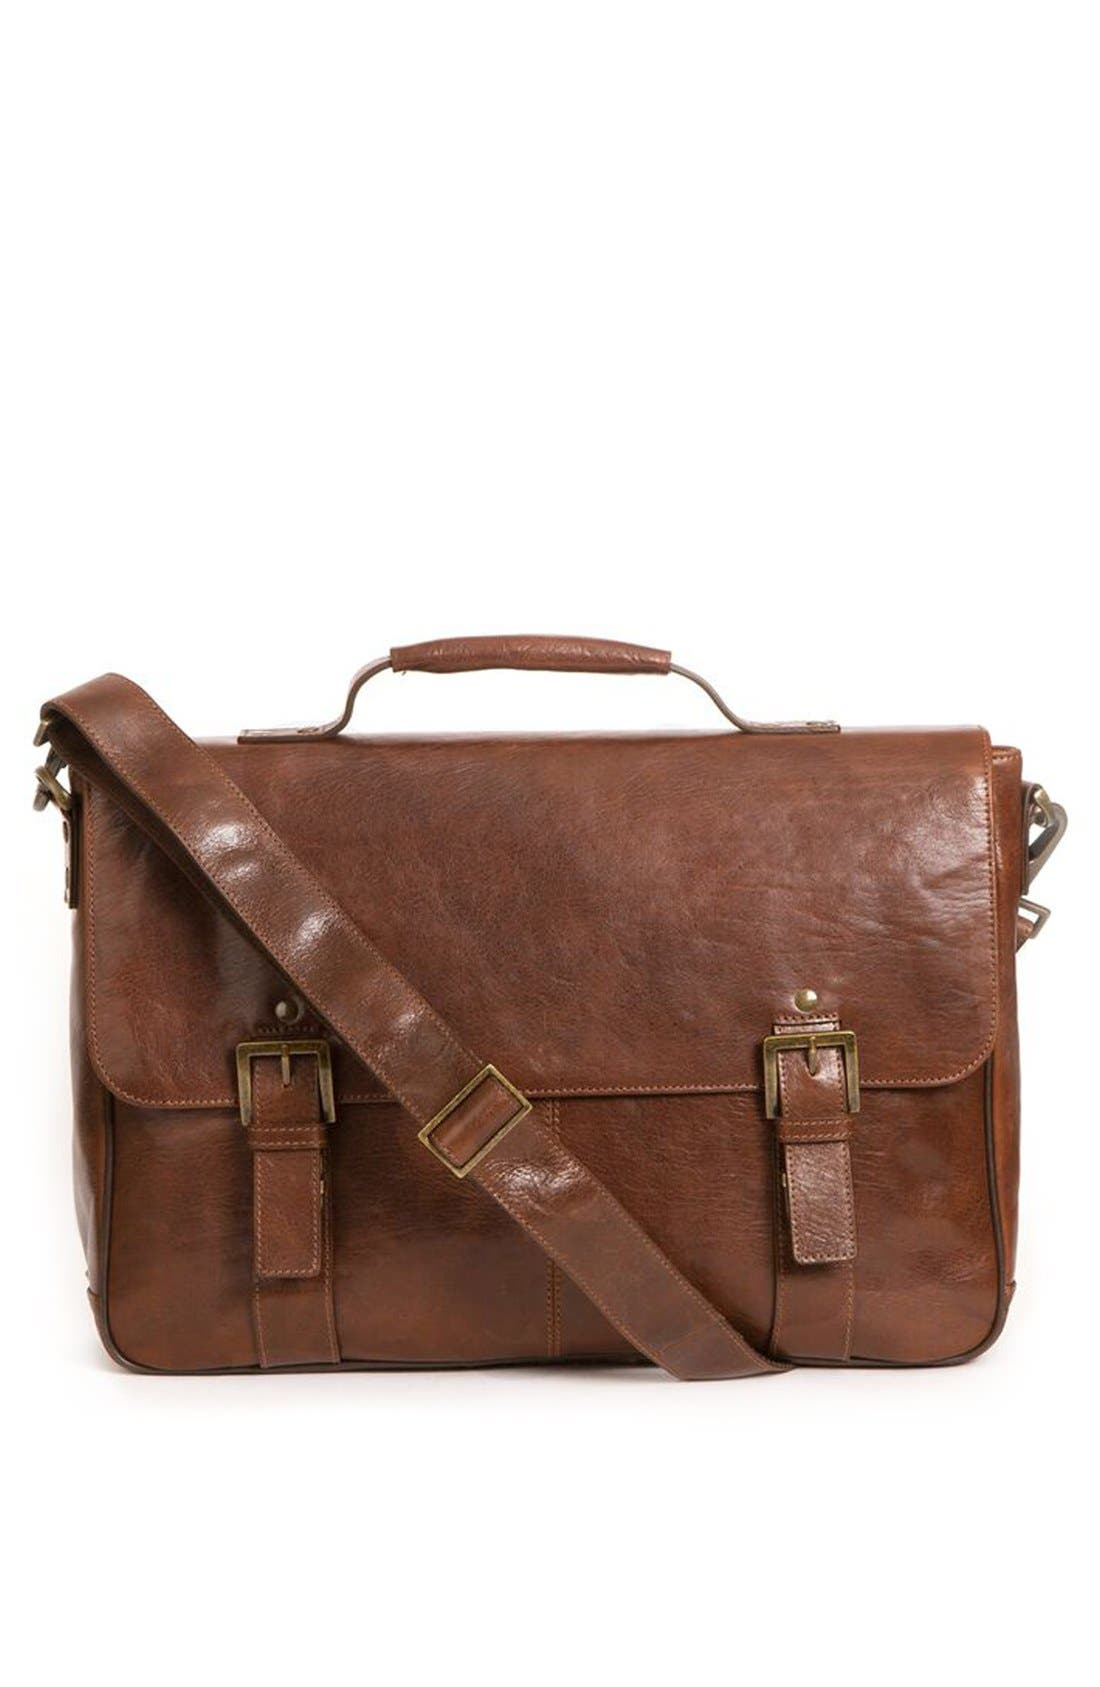 'Becker' Leather Messenger Bag,                         Main,                         color, WHISKEY W/ KHAKI